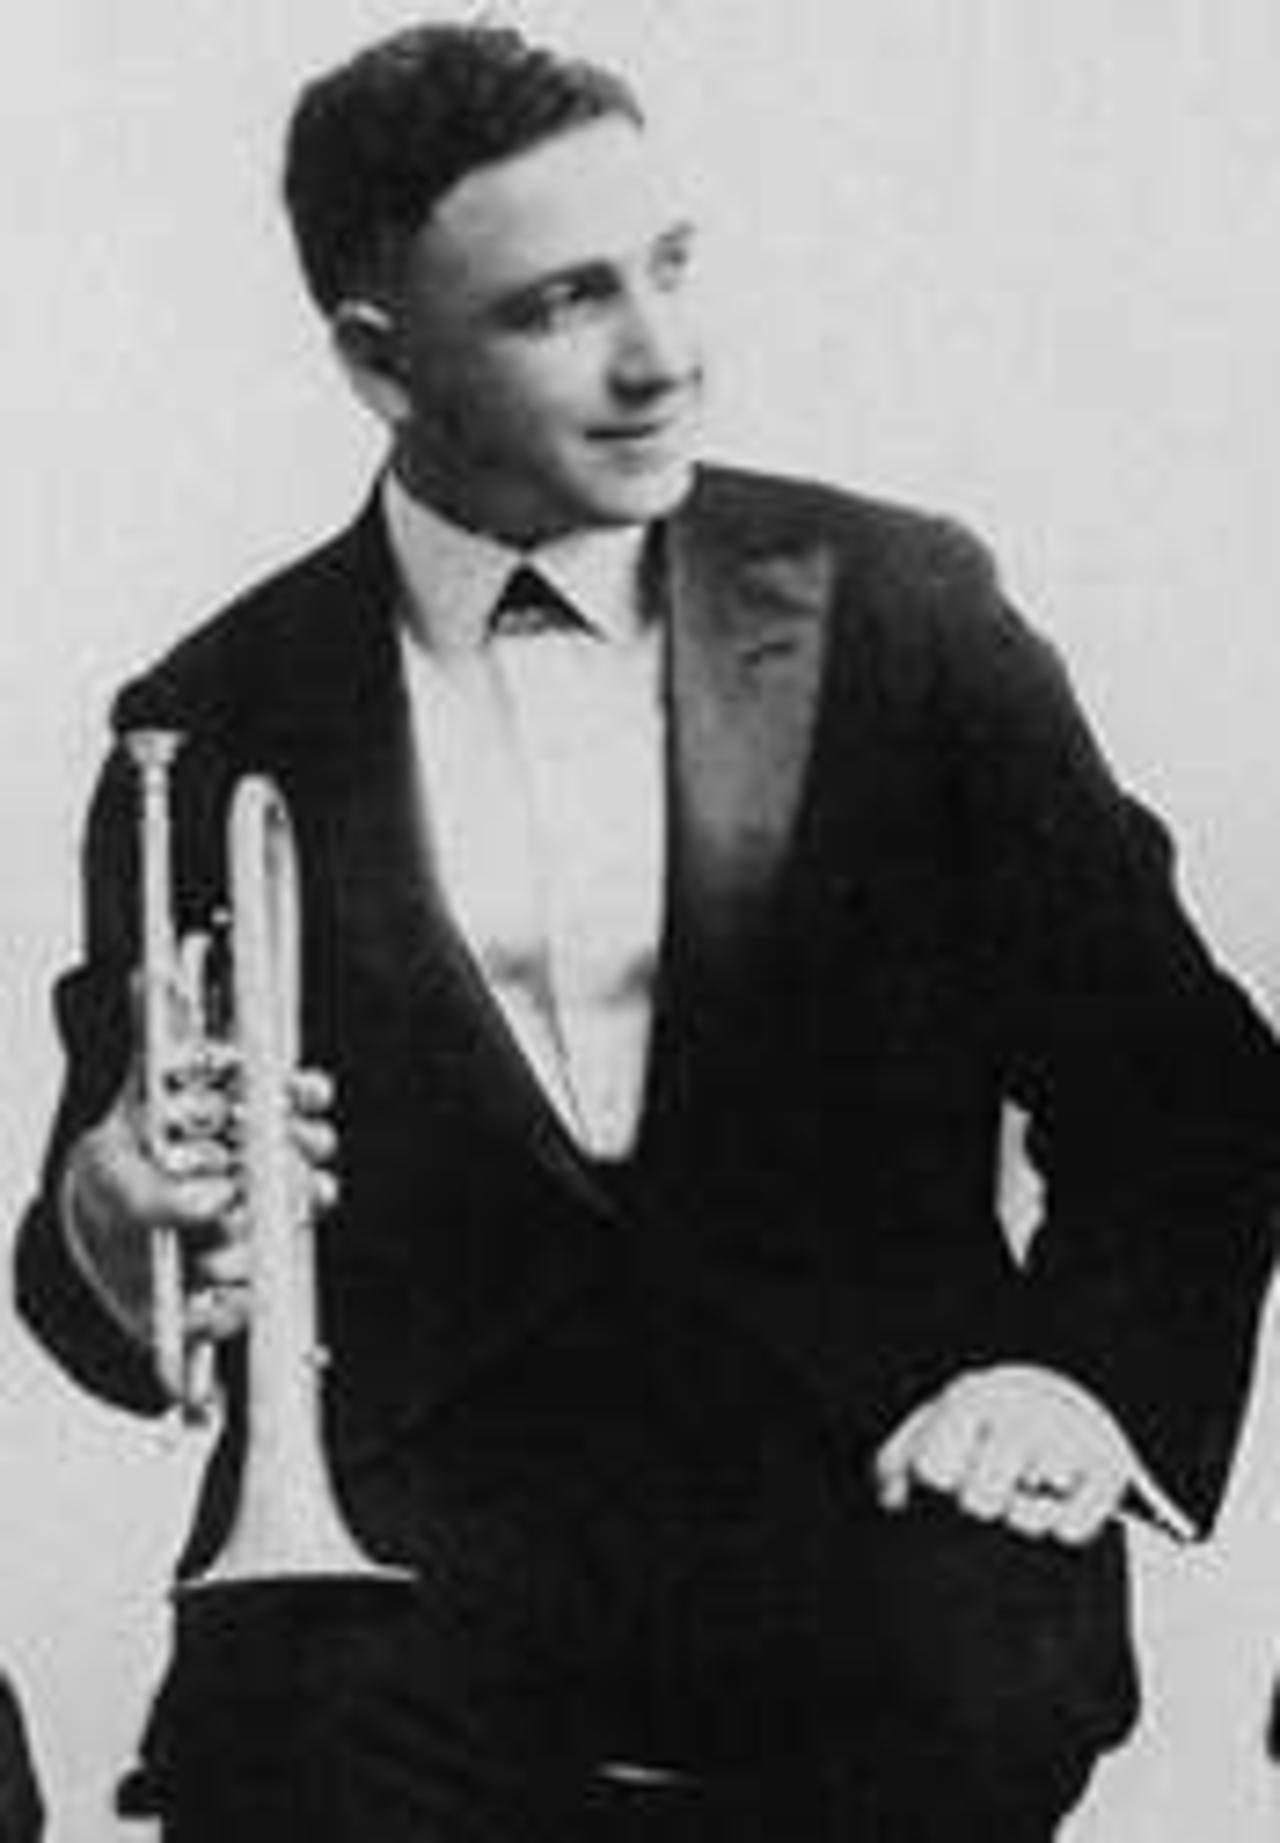 Nick LaRocca (Photo: Hogan Jazz Archive)